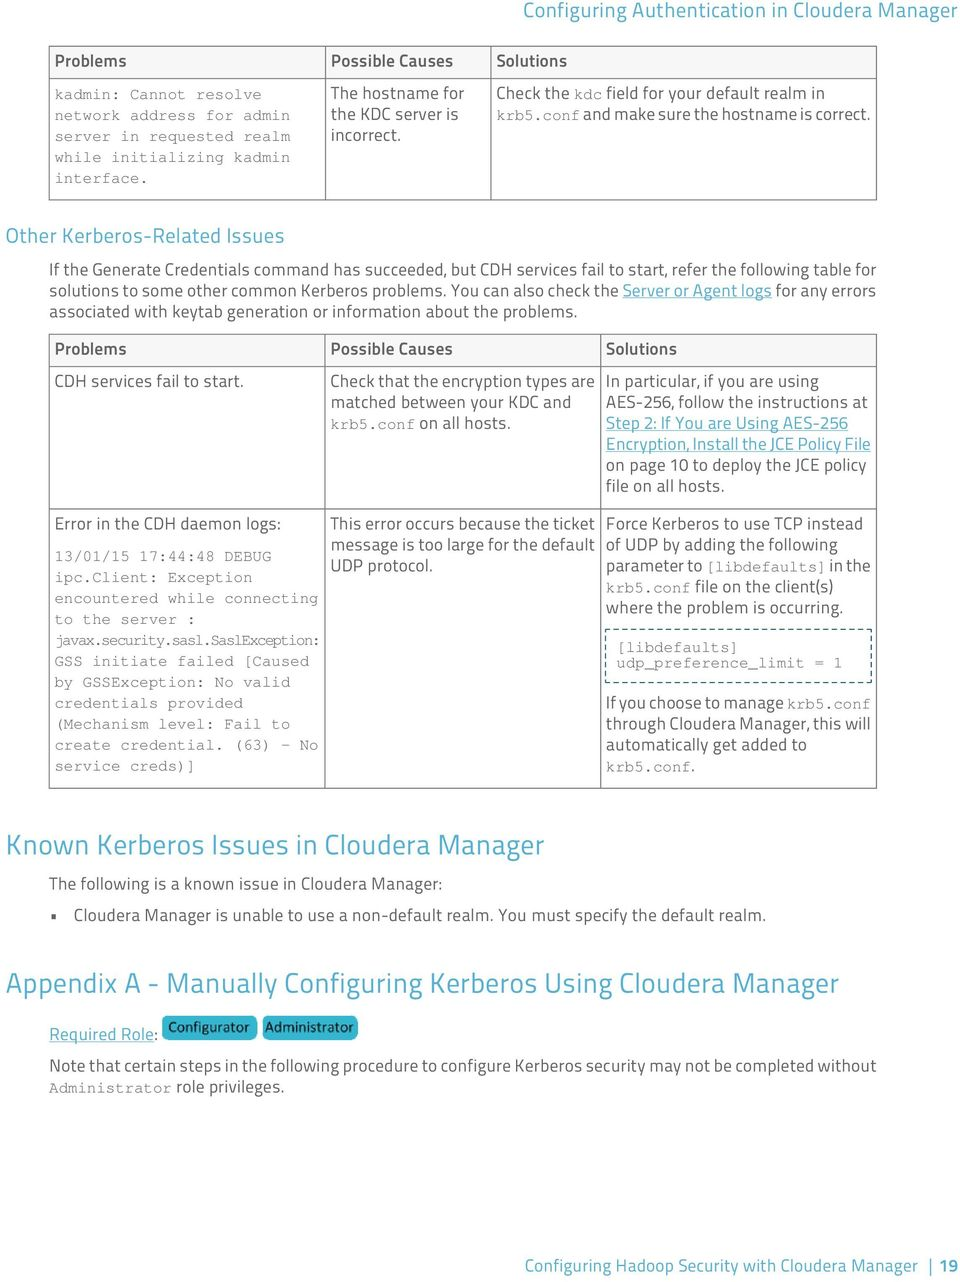 Configuring Hadoop Security with Cloudera Manager - PDF